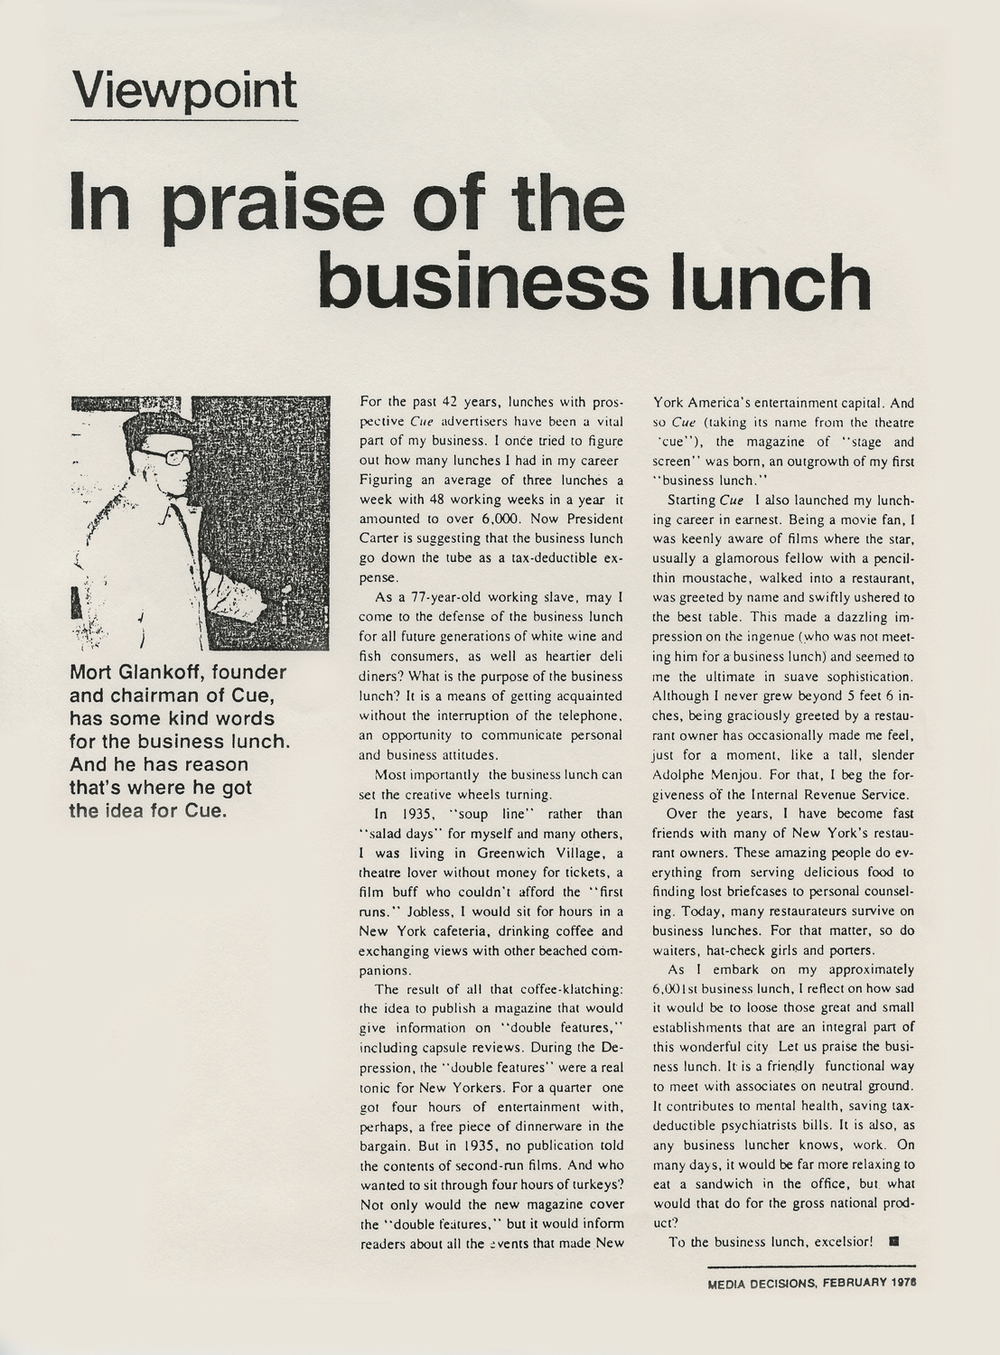 In Praise of the Business Lunch